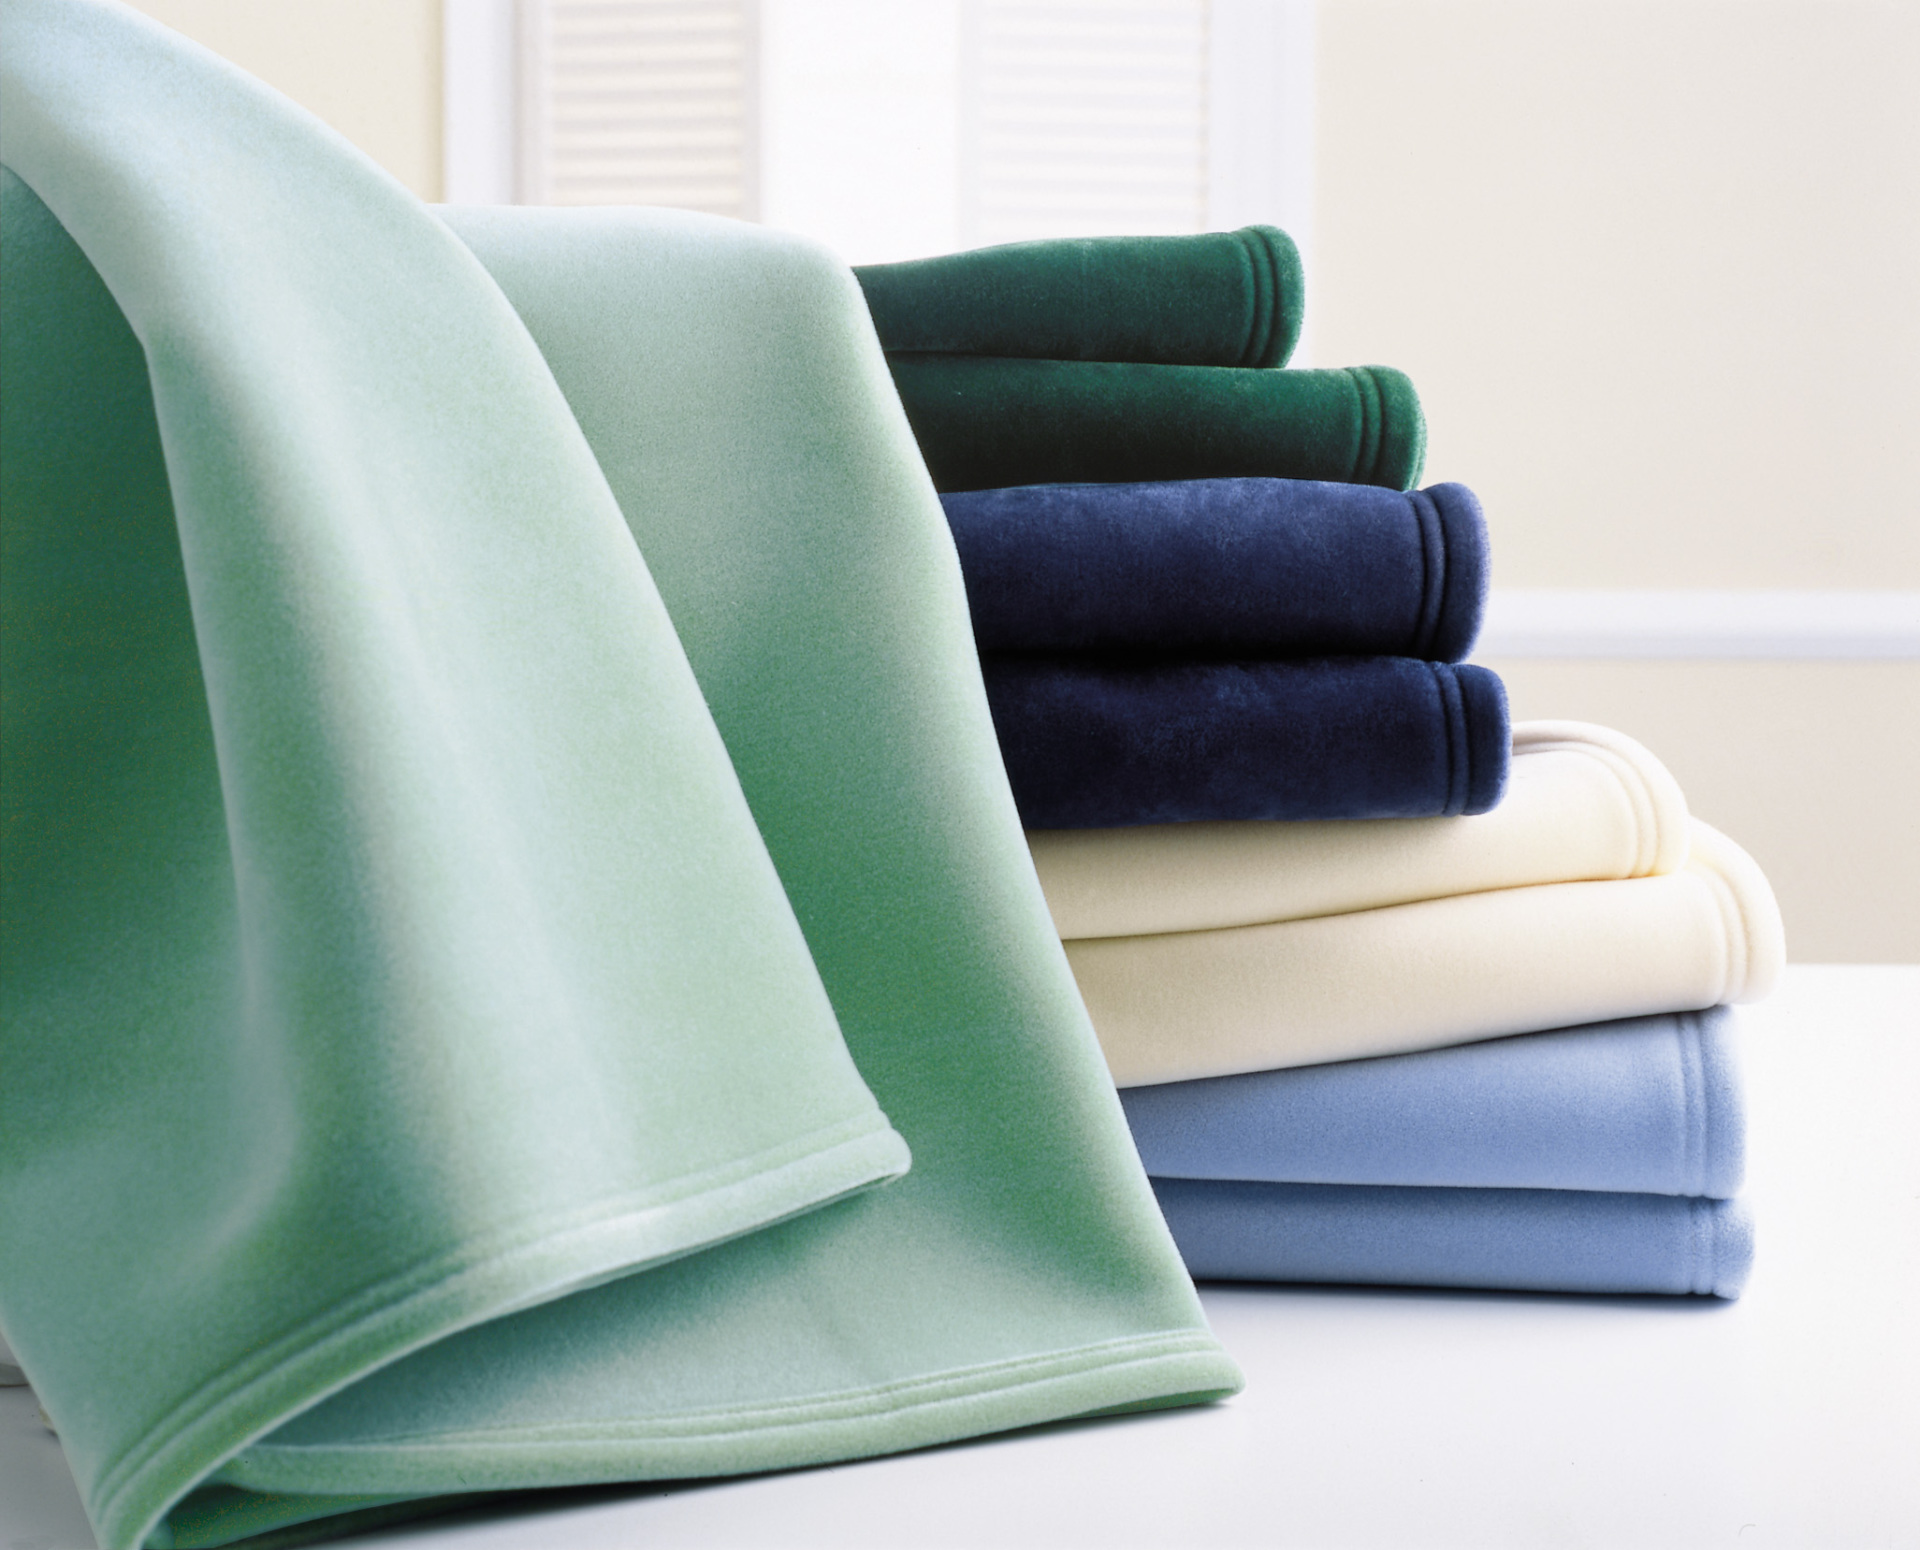 Vellux Blankets